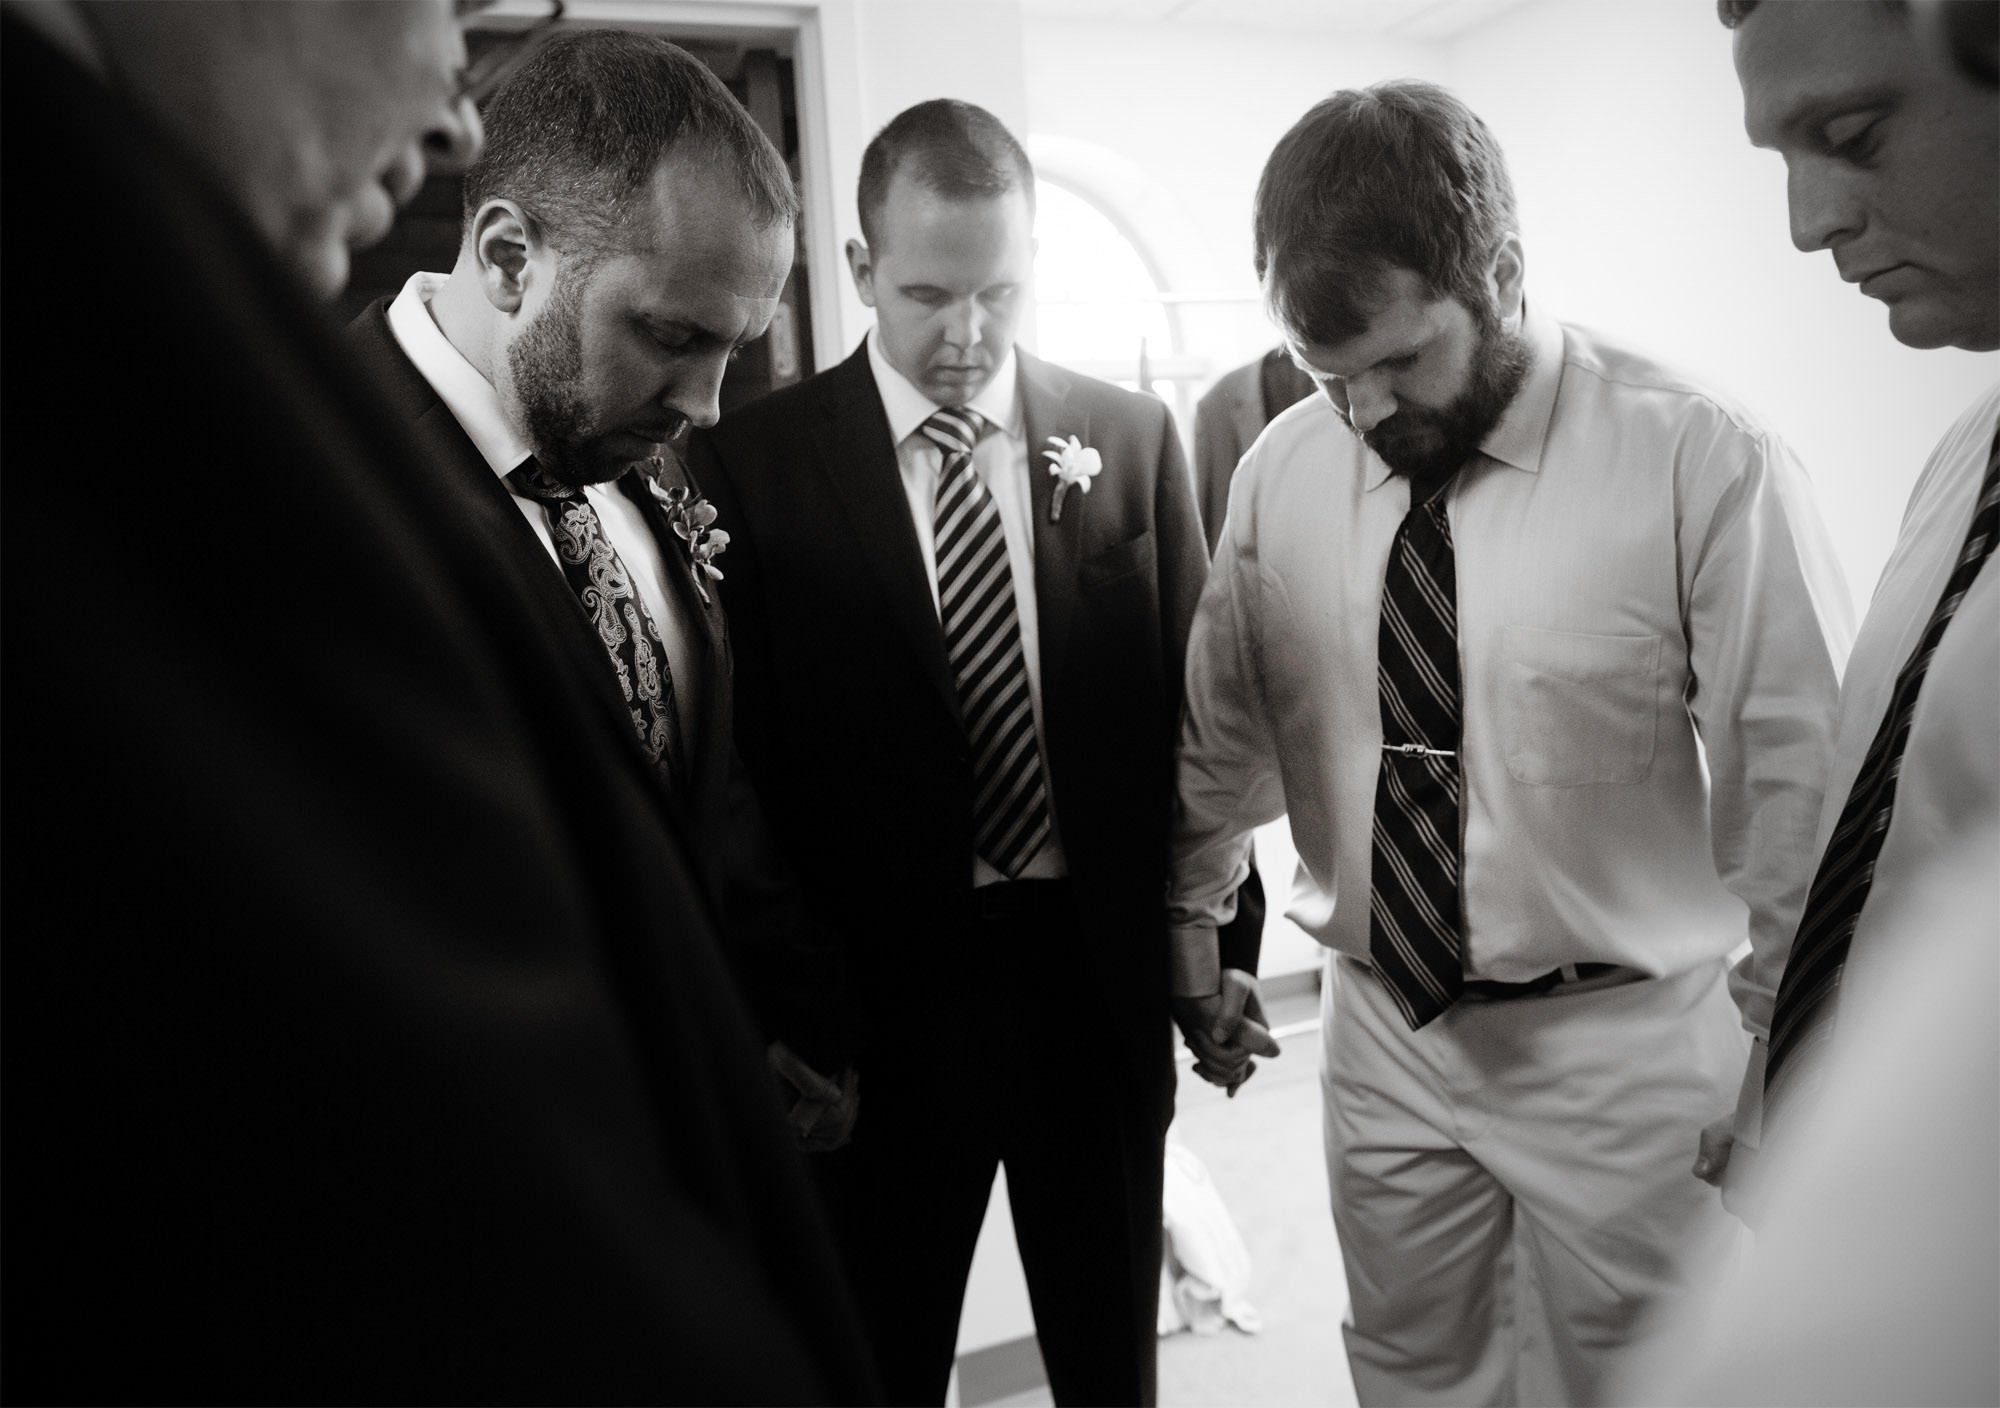 The groomsmen pray before the wedding ceremony at St Francis Hall.